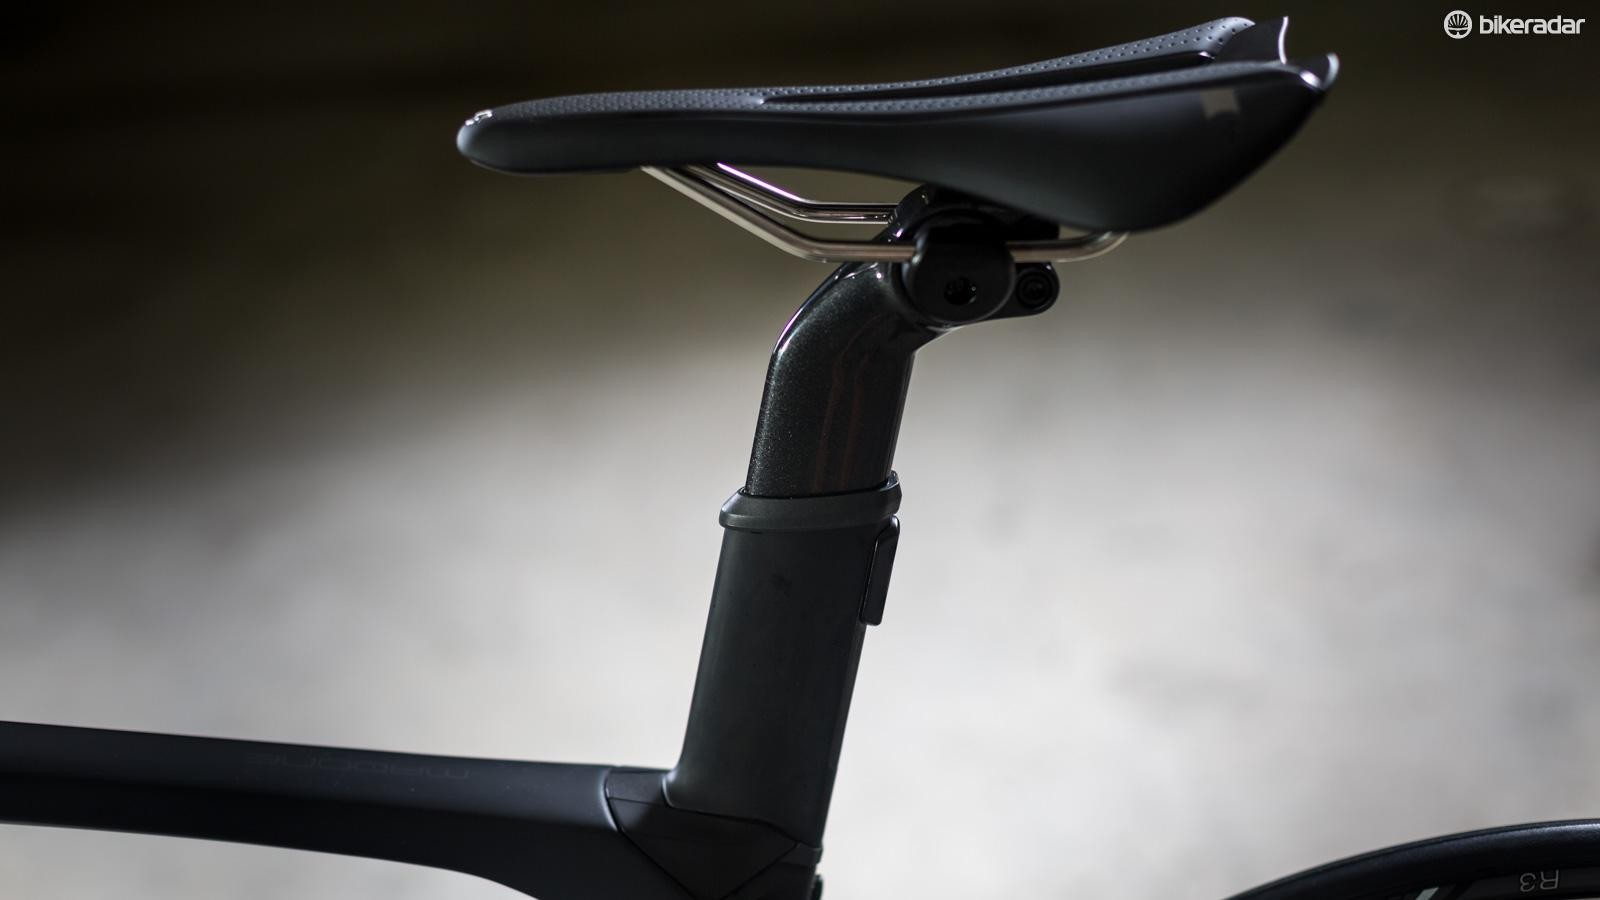 The micro-adjust seatmast sits inside the outer aero tubing and allows for plenty of adjustability